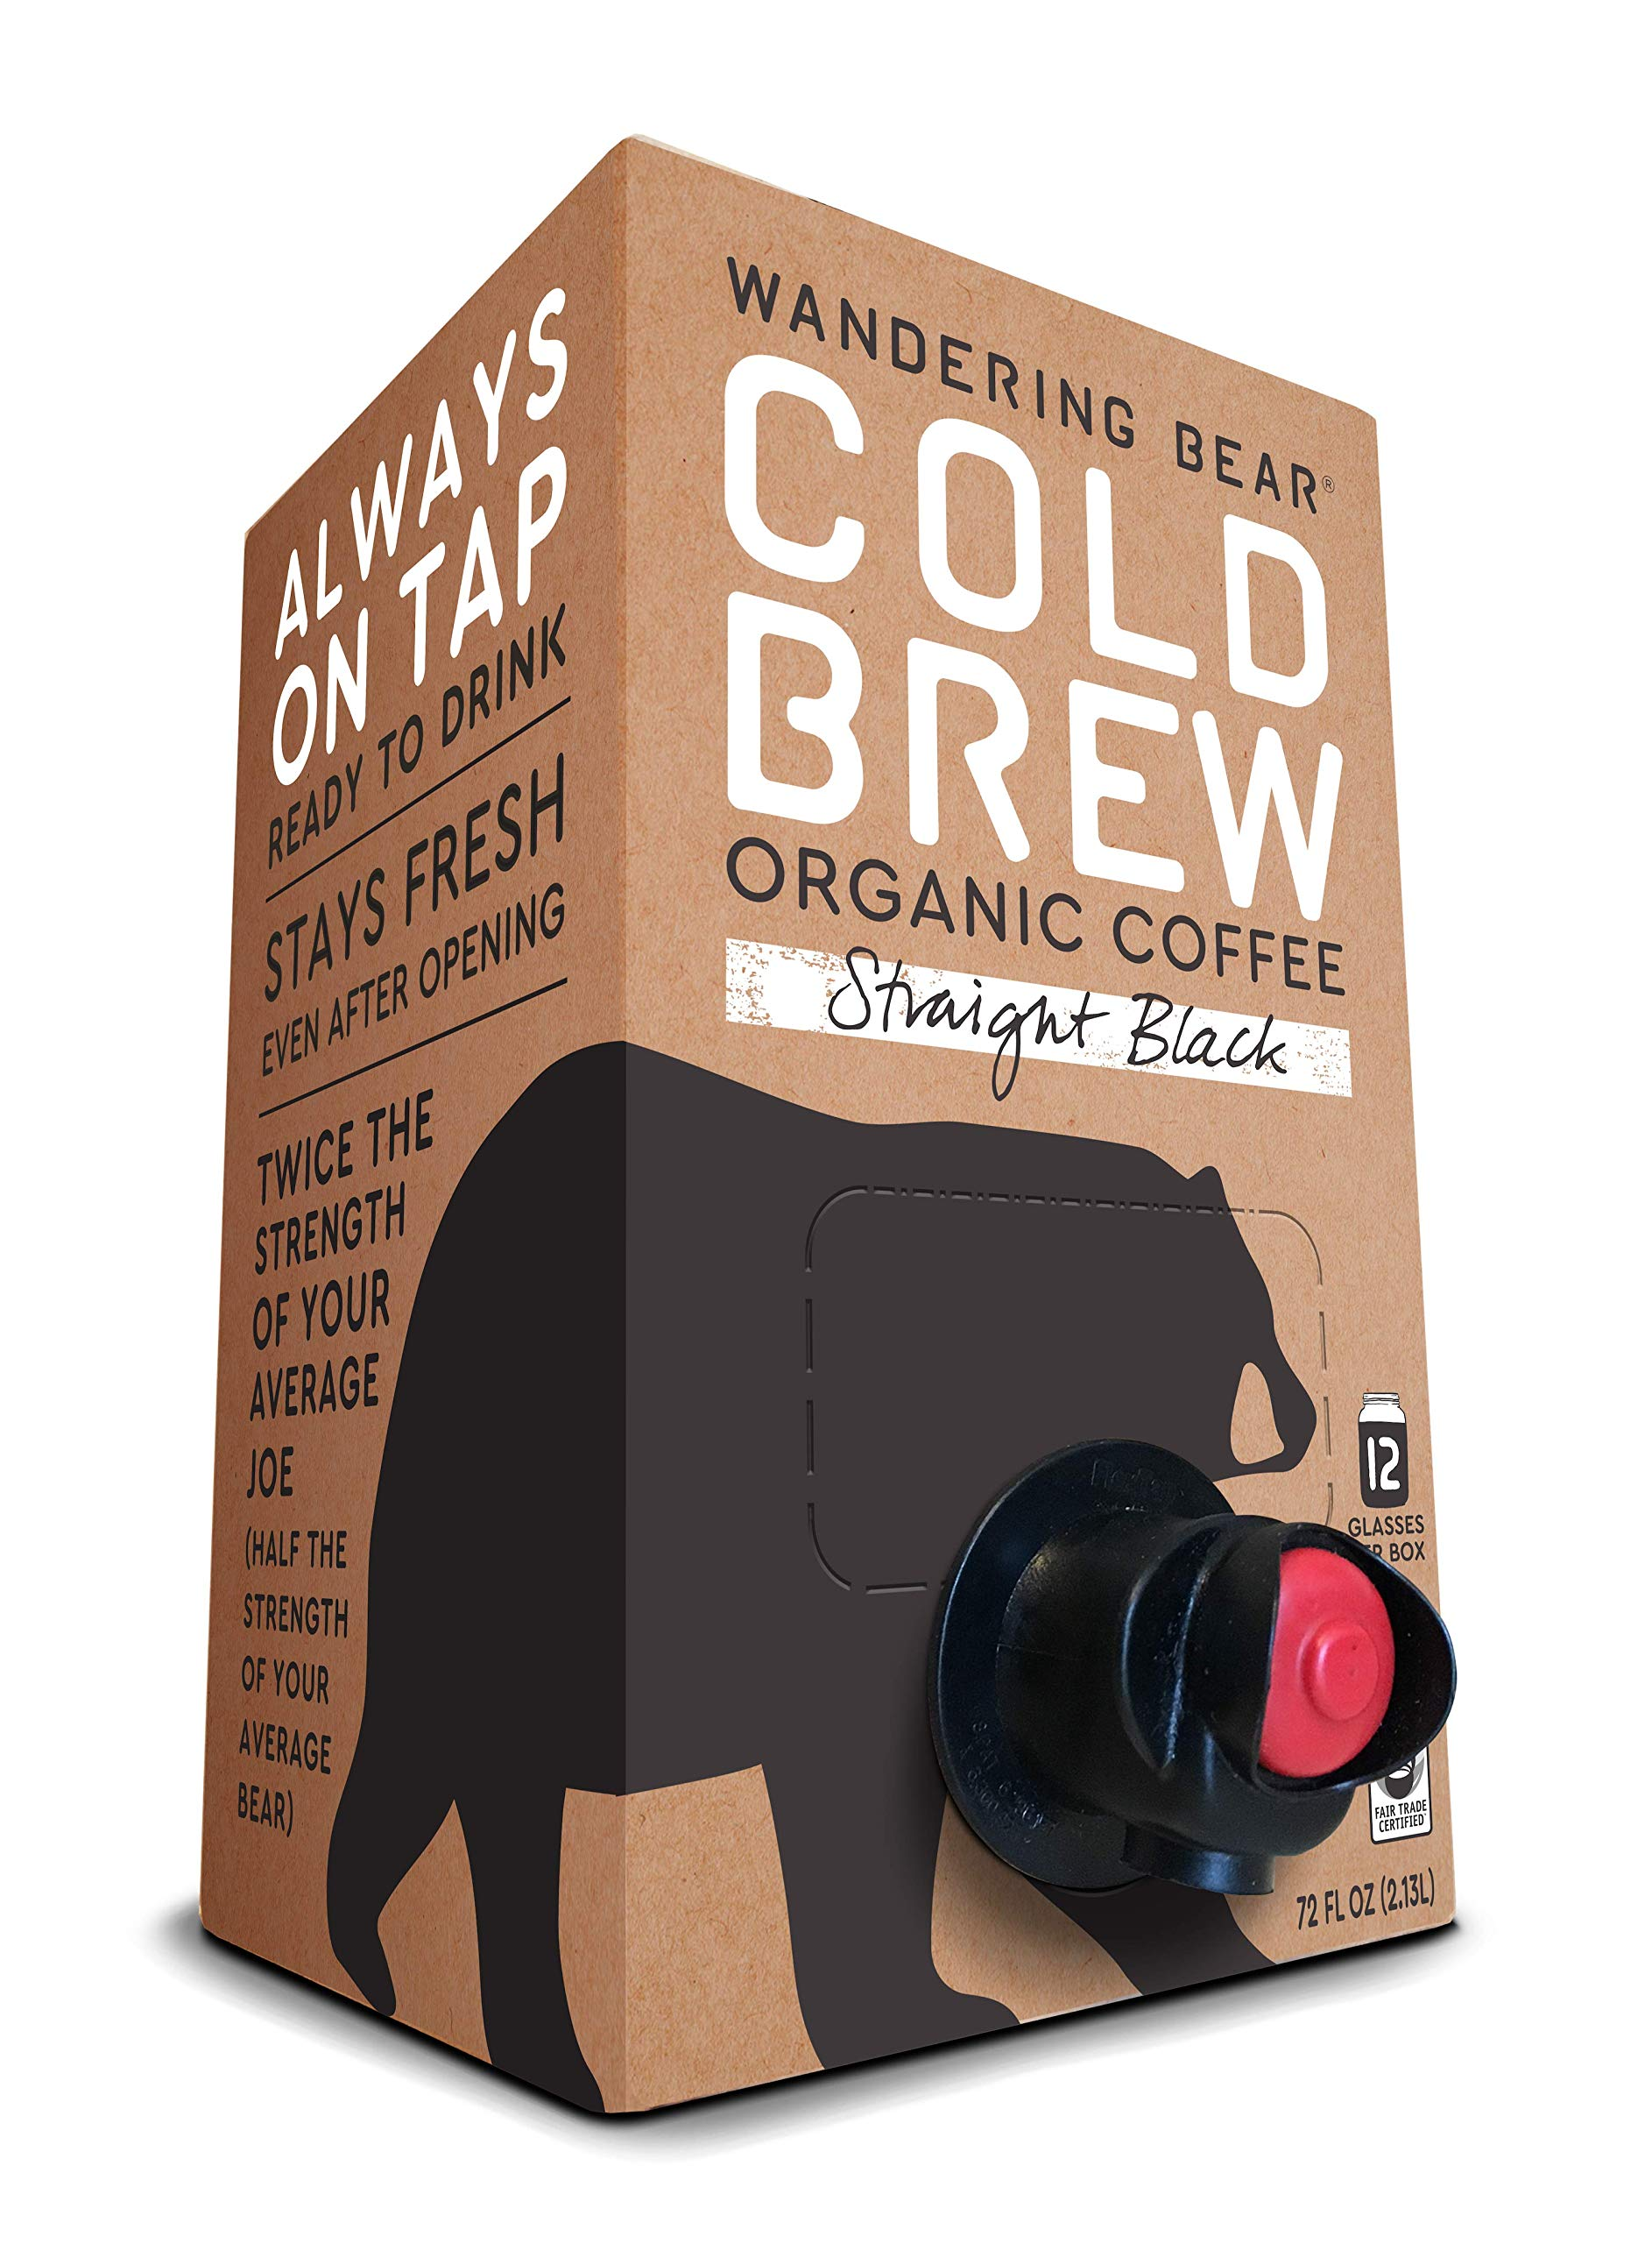 Wandering Bear Organic Cold Brew Coffee On Tap, Straight Black, No Sugar, Always Fresh and Ready to Drink, Not a Concentrate, 72 fl oz by Wandering Bear